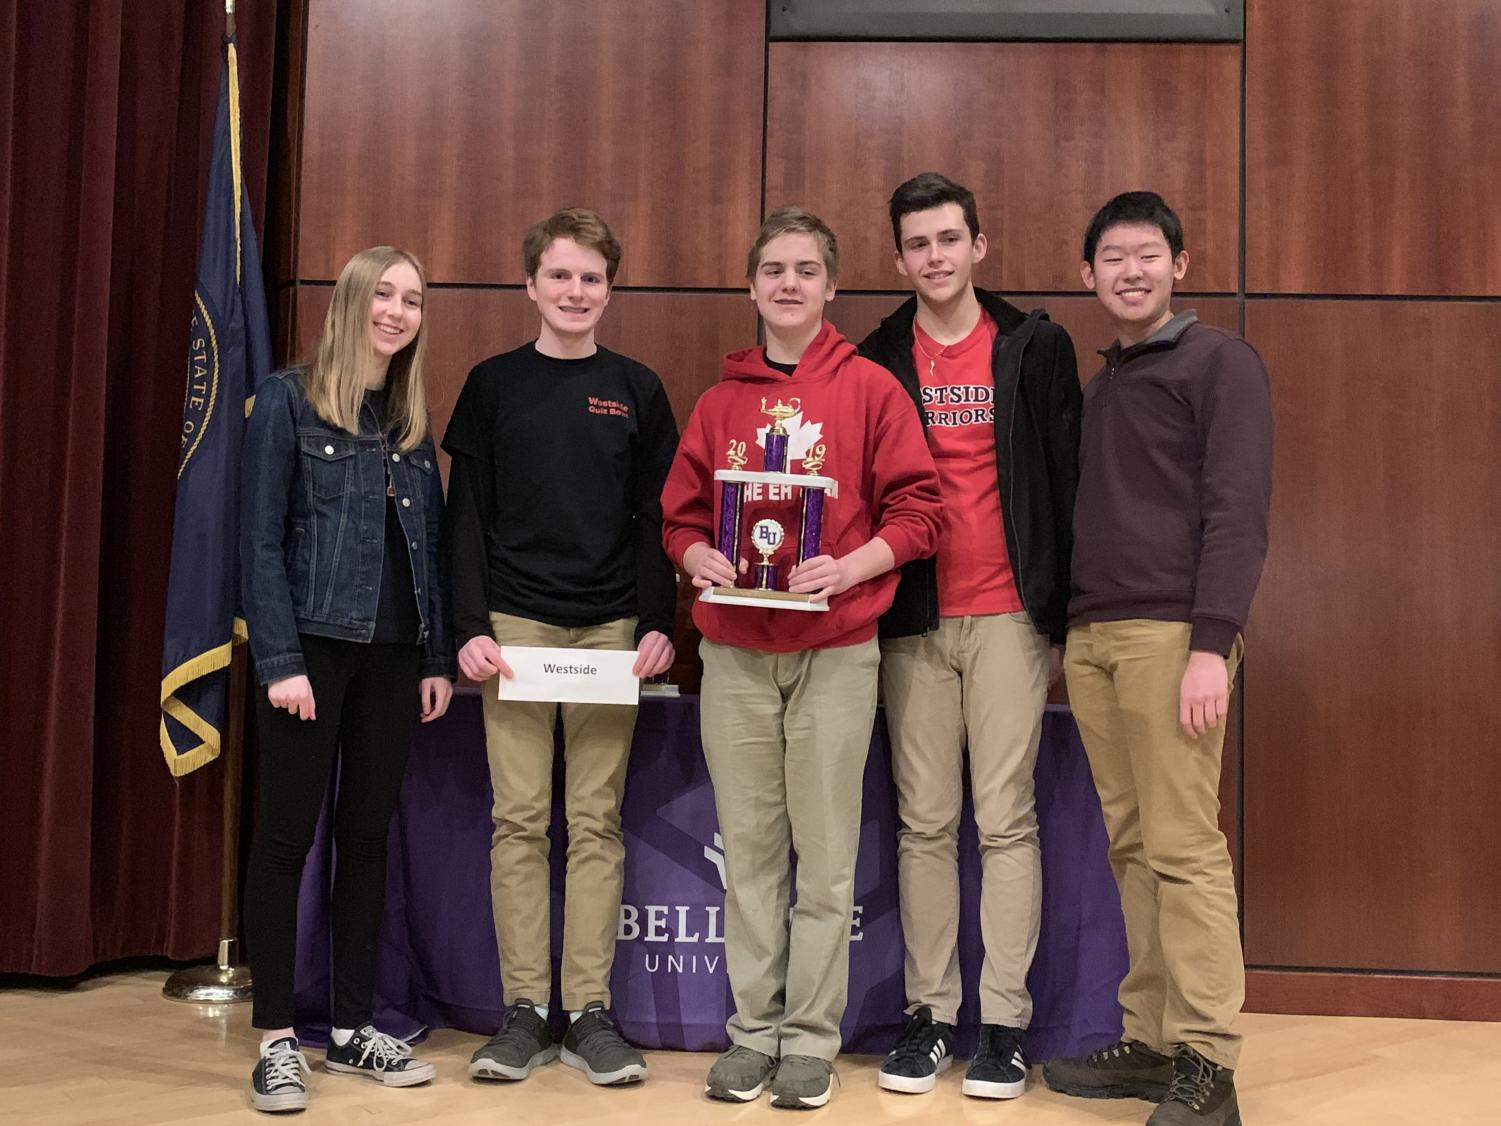 Quiz bowl team after winning (from left to right), Reese Pike, Theodore Jansen, Paul Suder, Brendan Pennington, and Andrew Li.